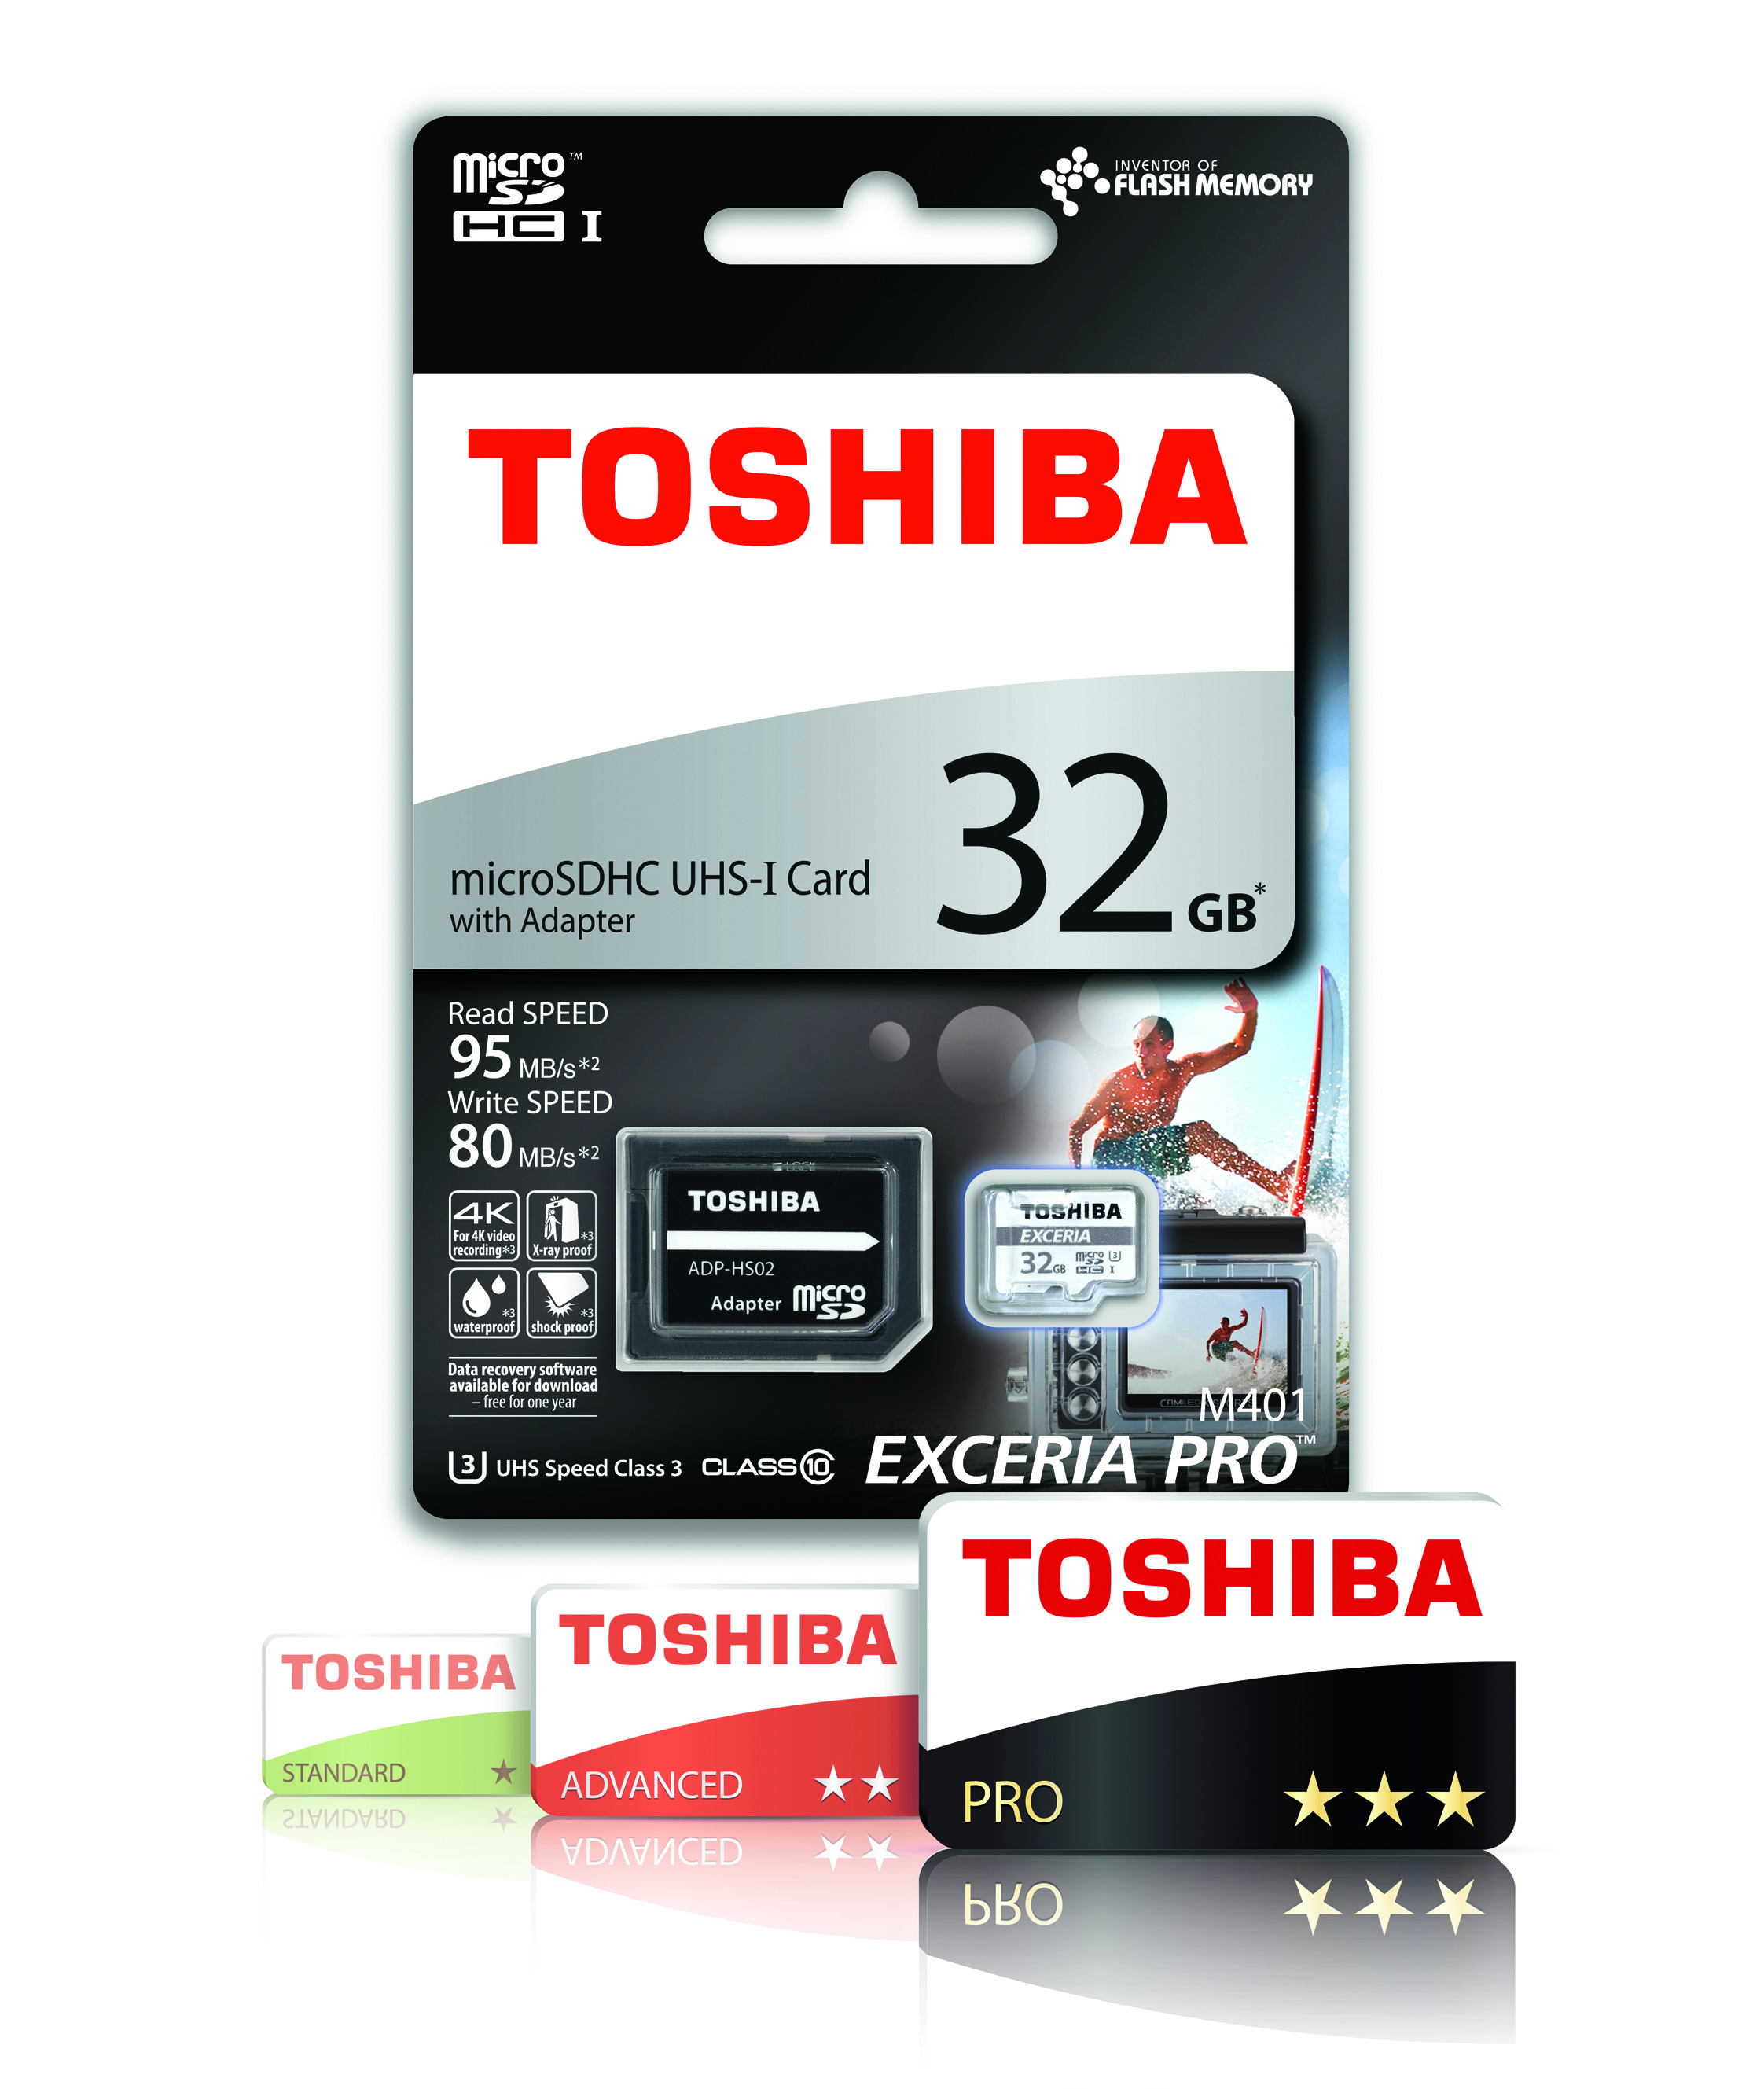 Toshiba EXCERIA PRO M401 32GB Micro SD with Adap | 95 MB/S | 4K & Full HD Record | For Phone & Camera Thumbnail 3